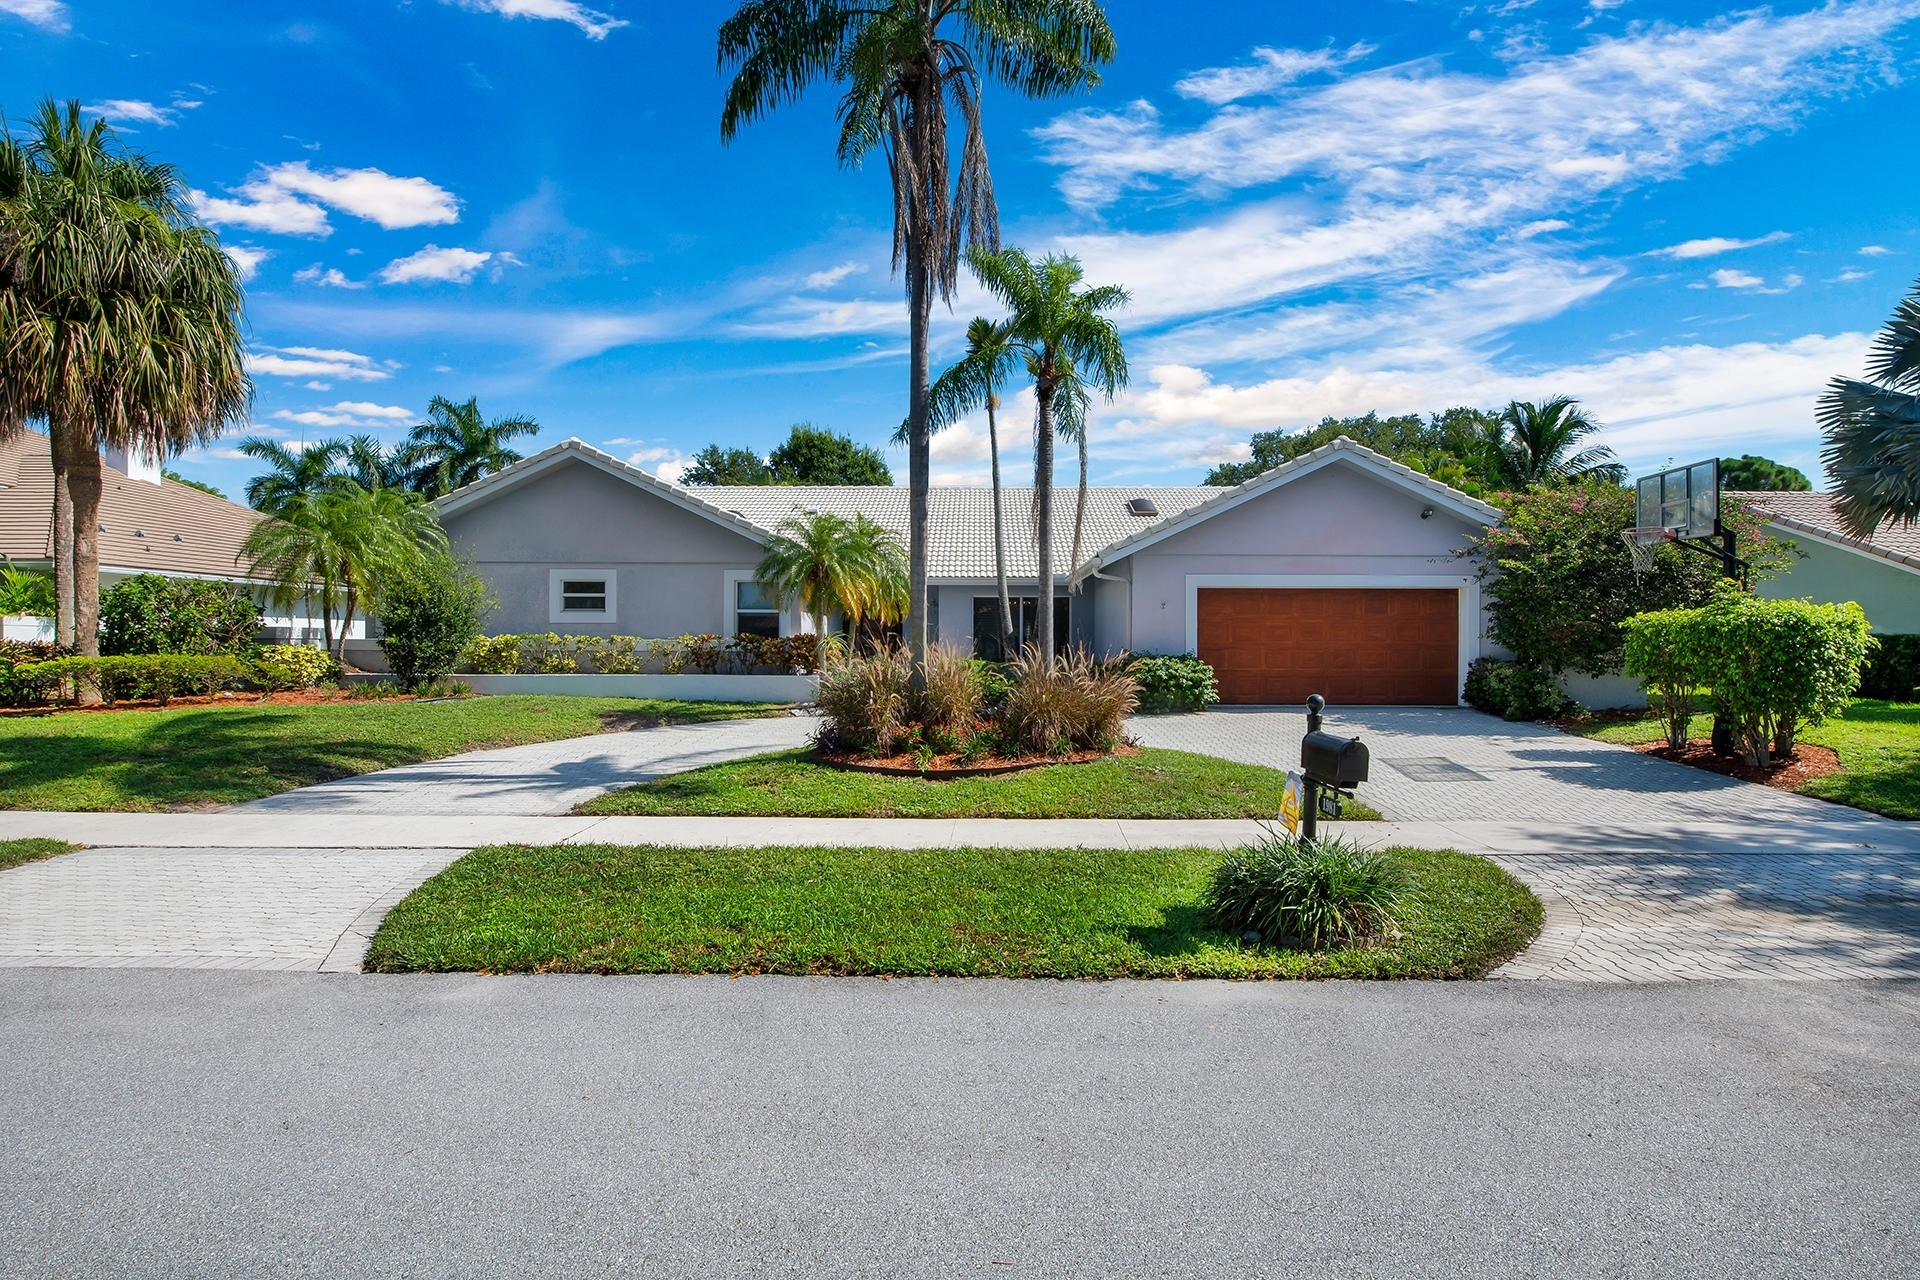 Property at Boca Raton